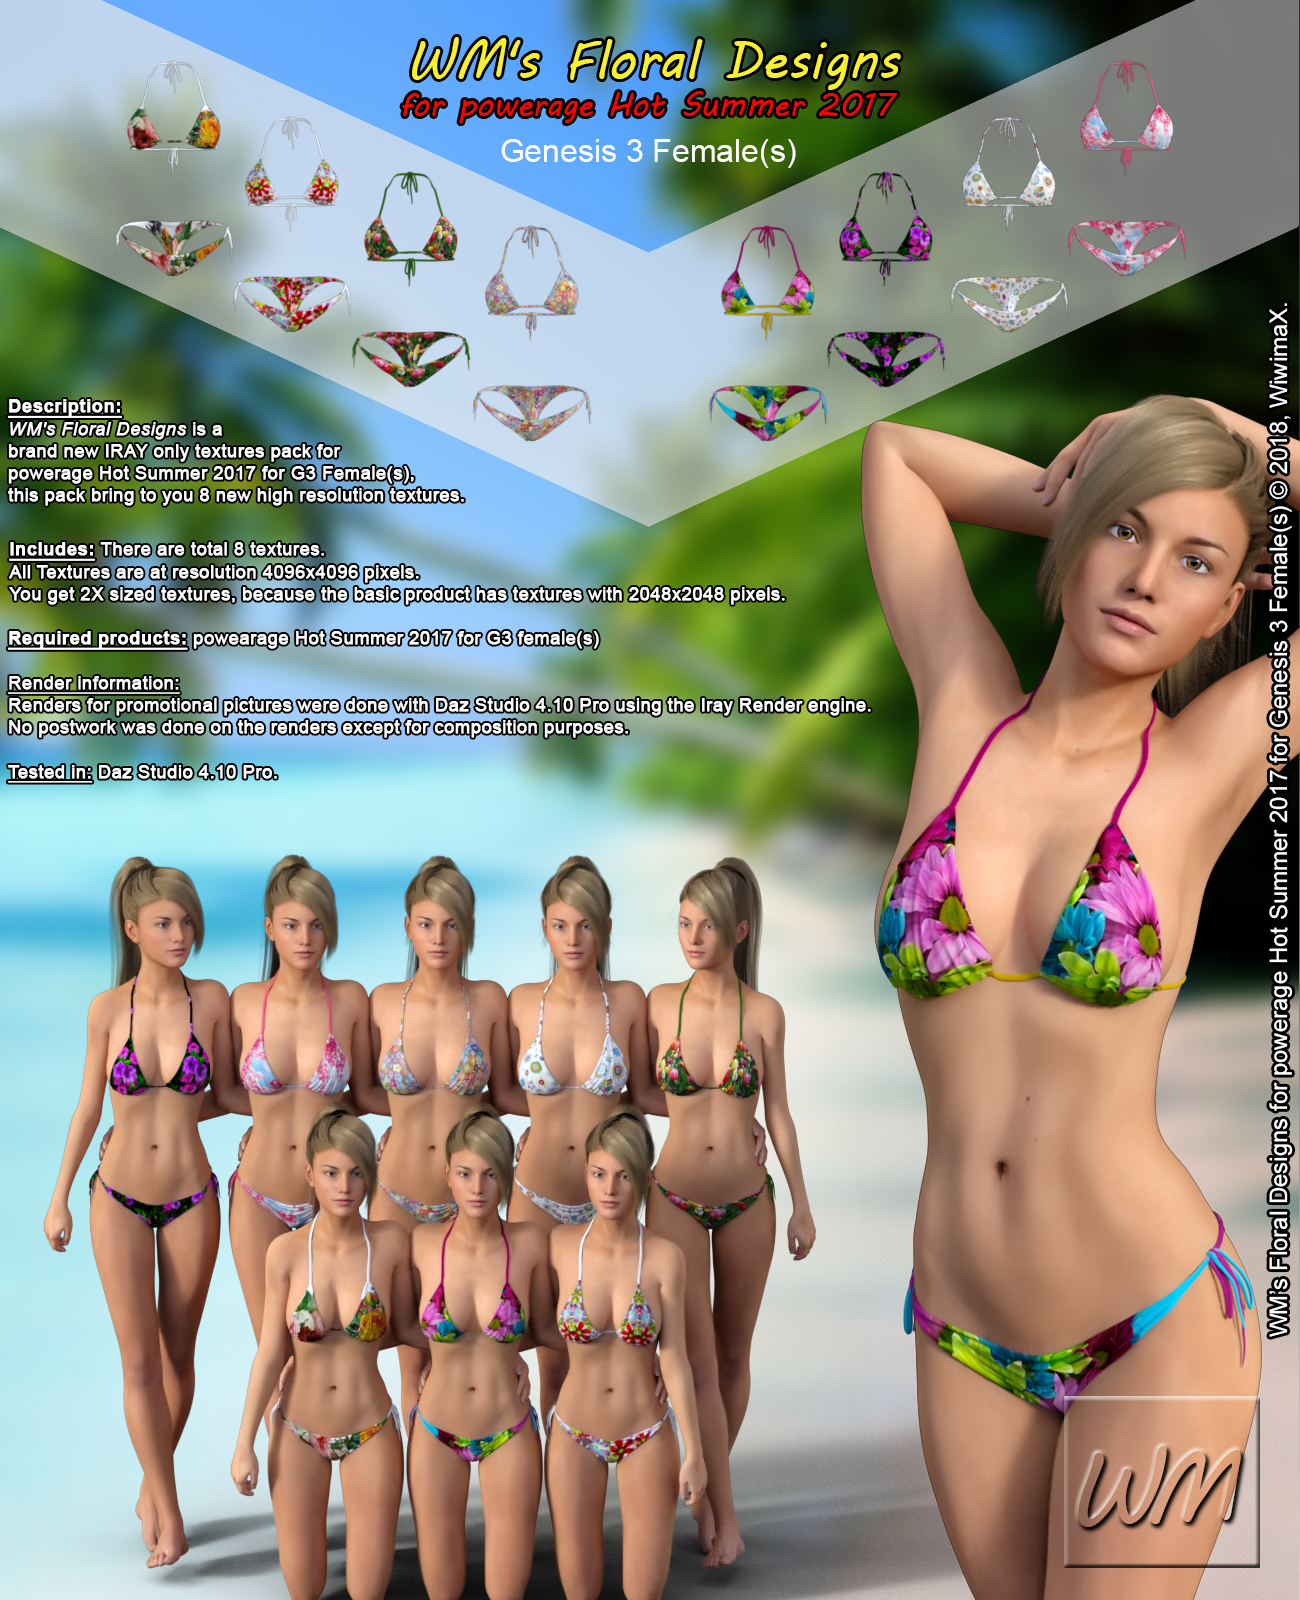 WM's Floral Designs for powerage Hot Summer 2017 for Genesis 3 Females by WiwimaX